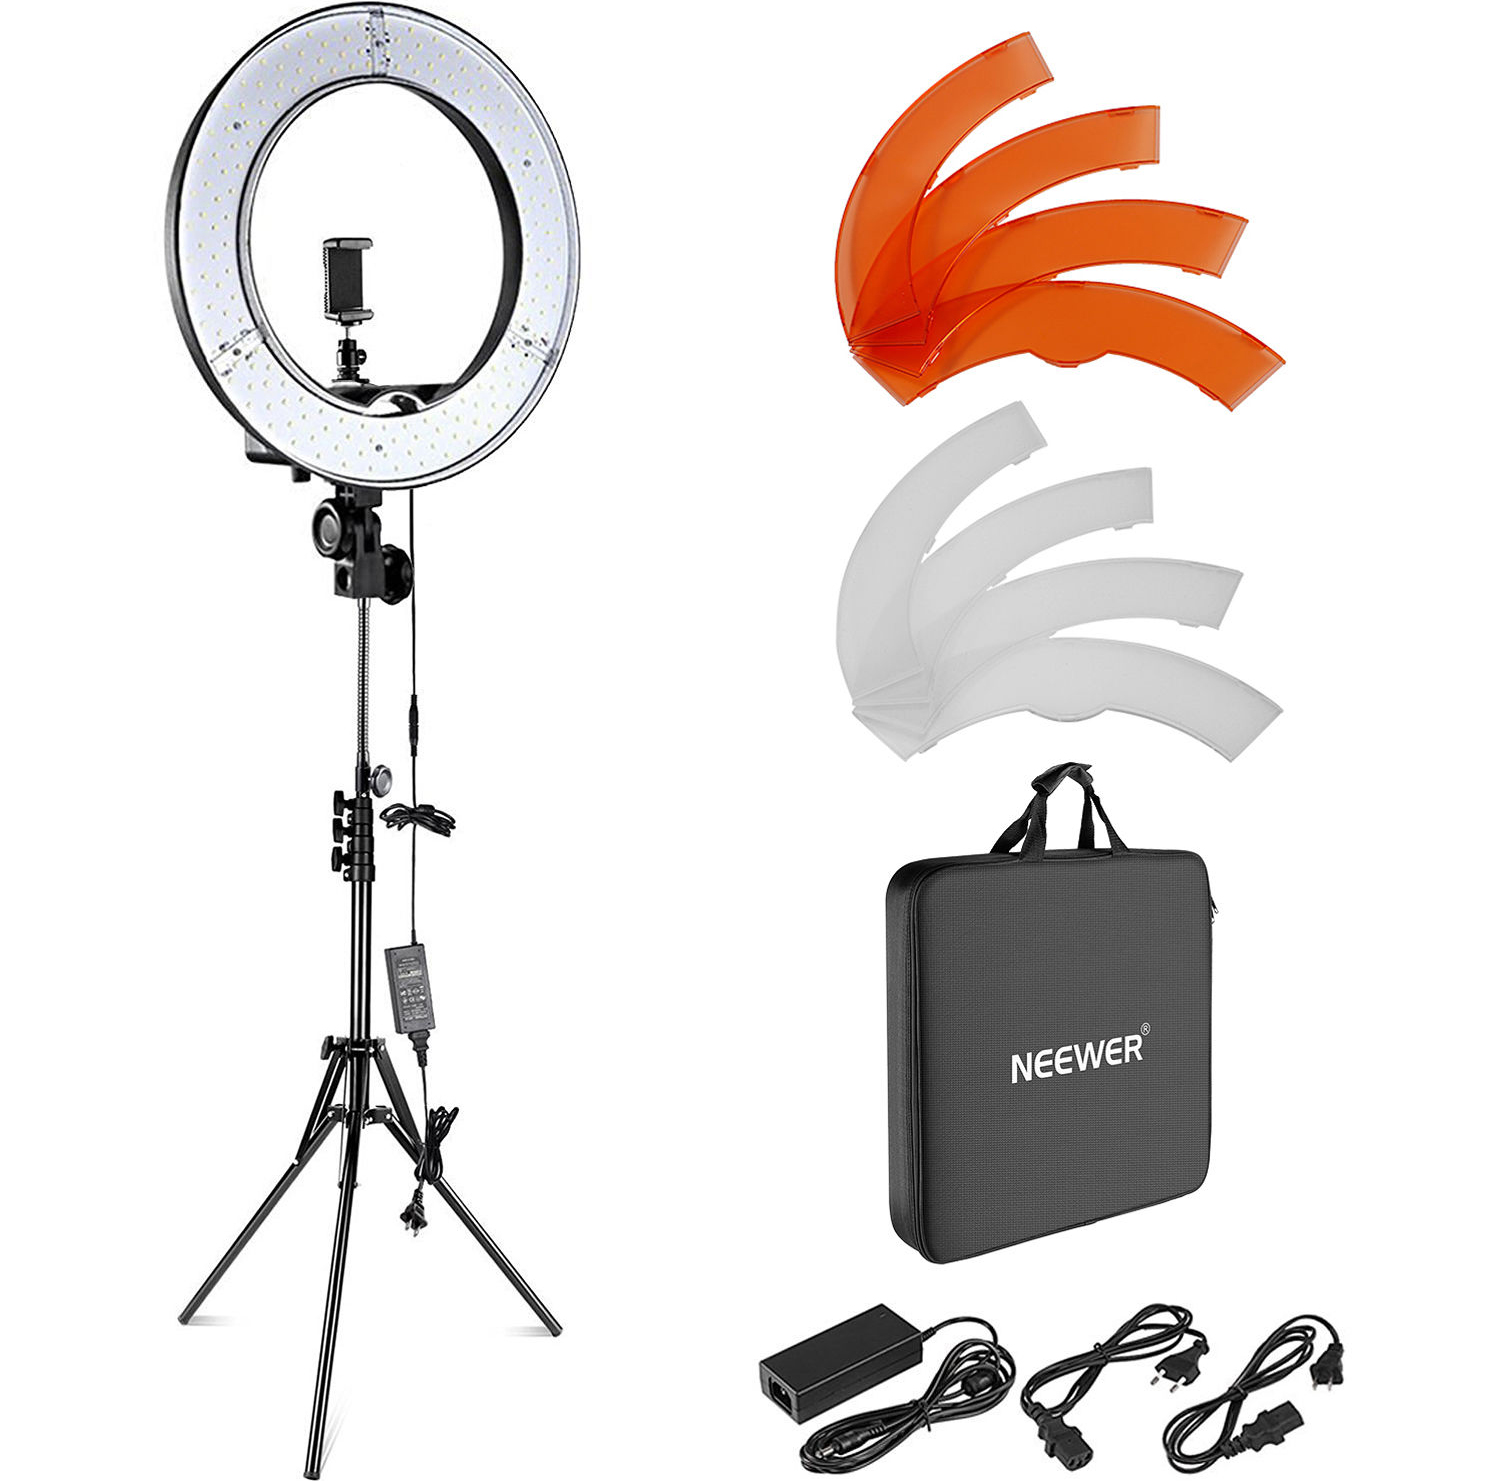 Neewer LED Ring Light with Stand and Accessories Kit